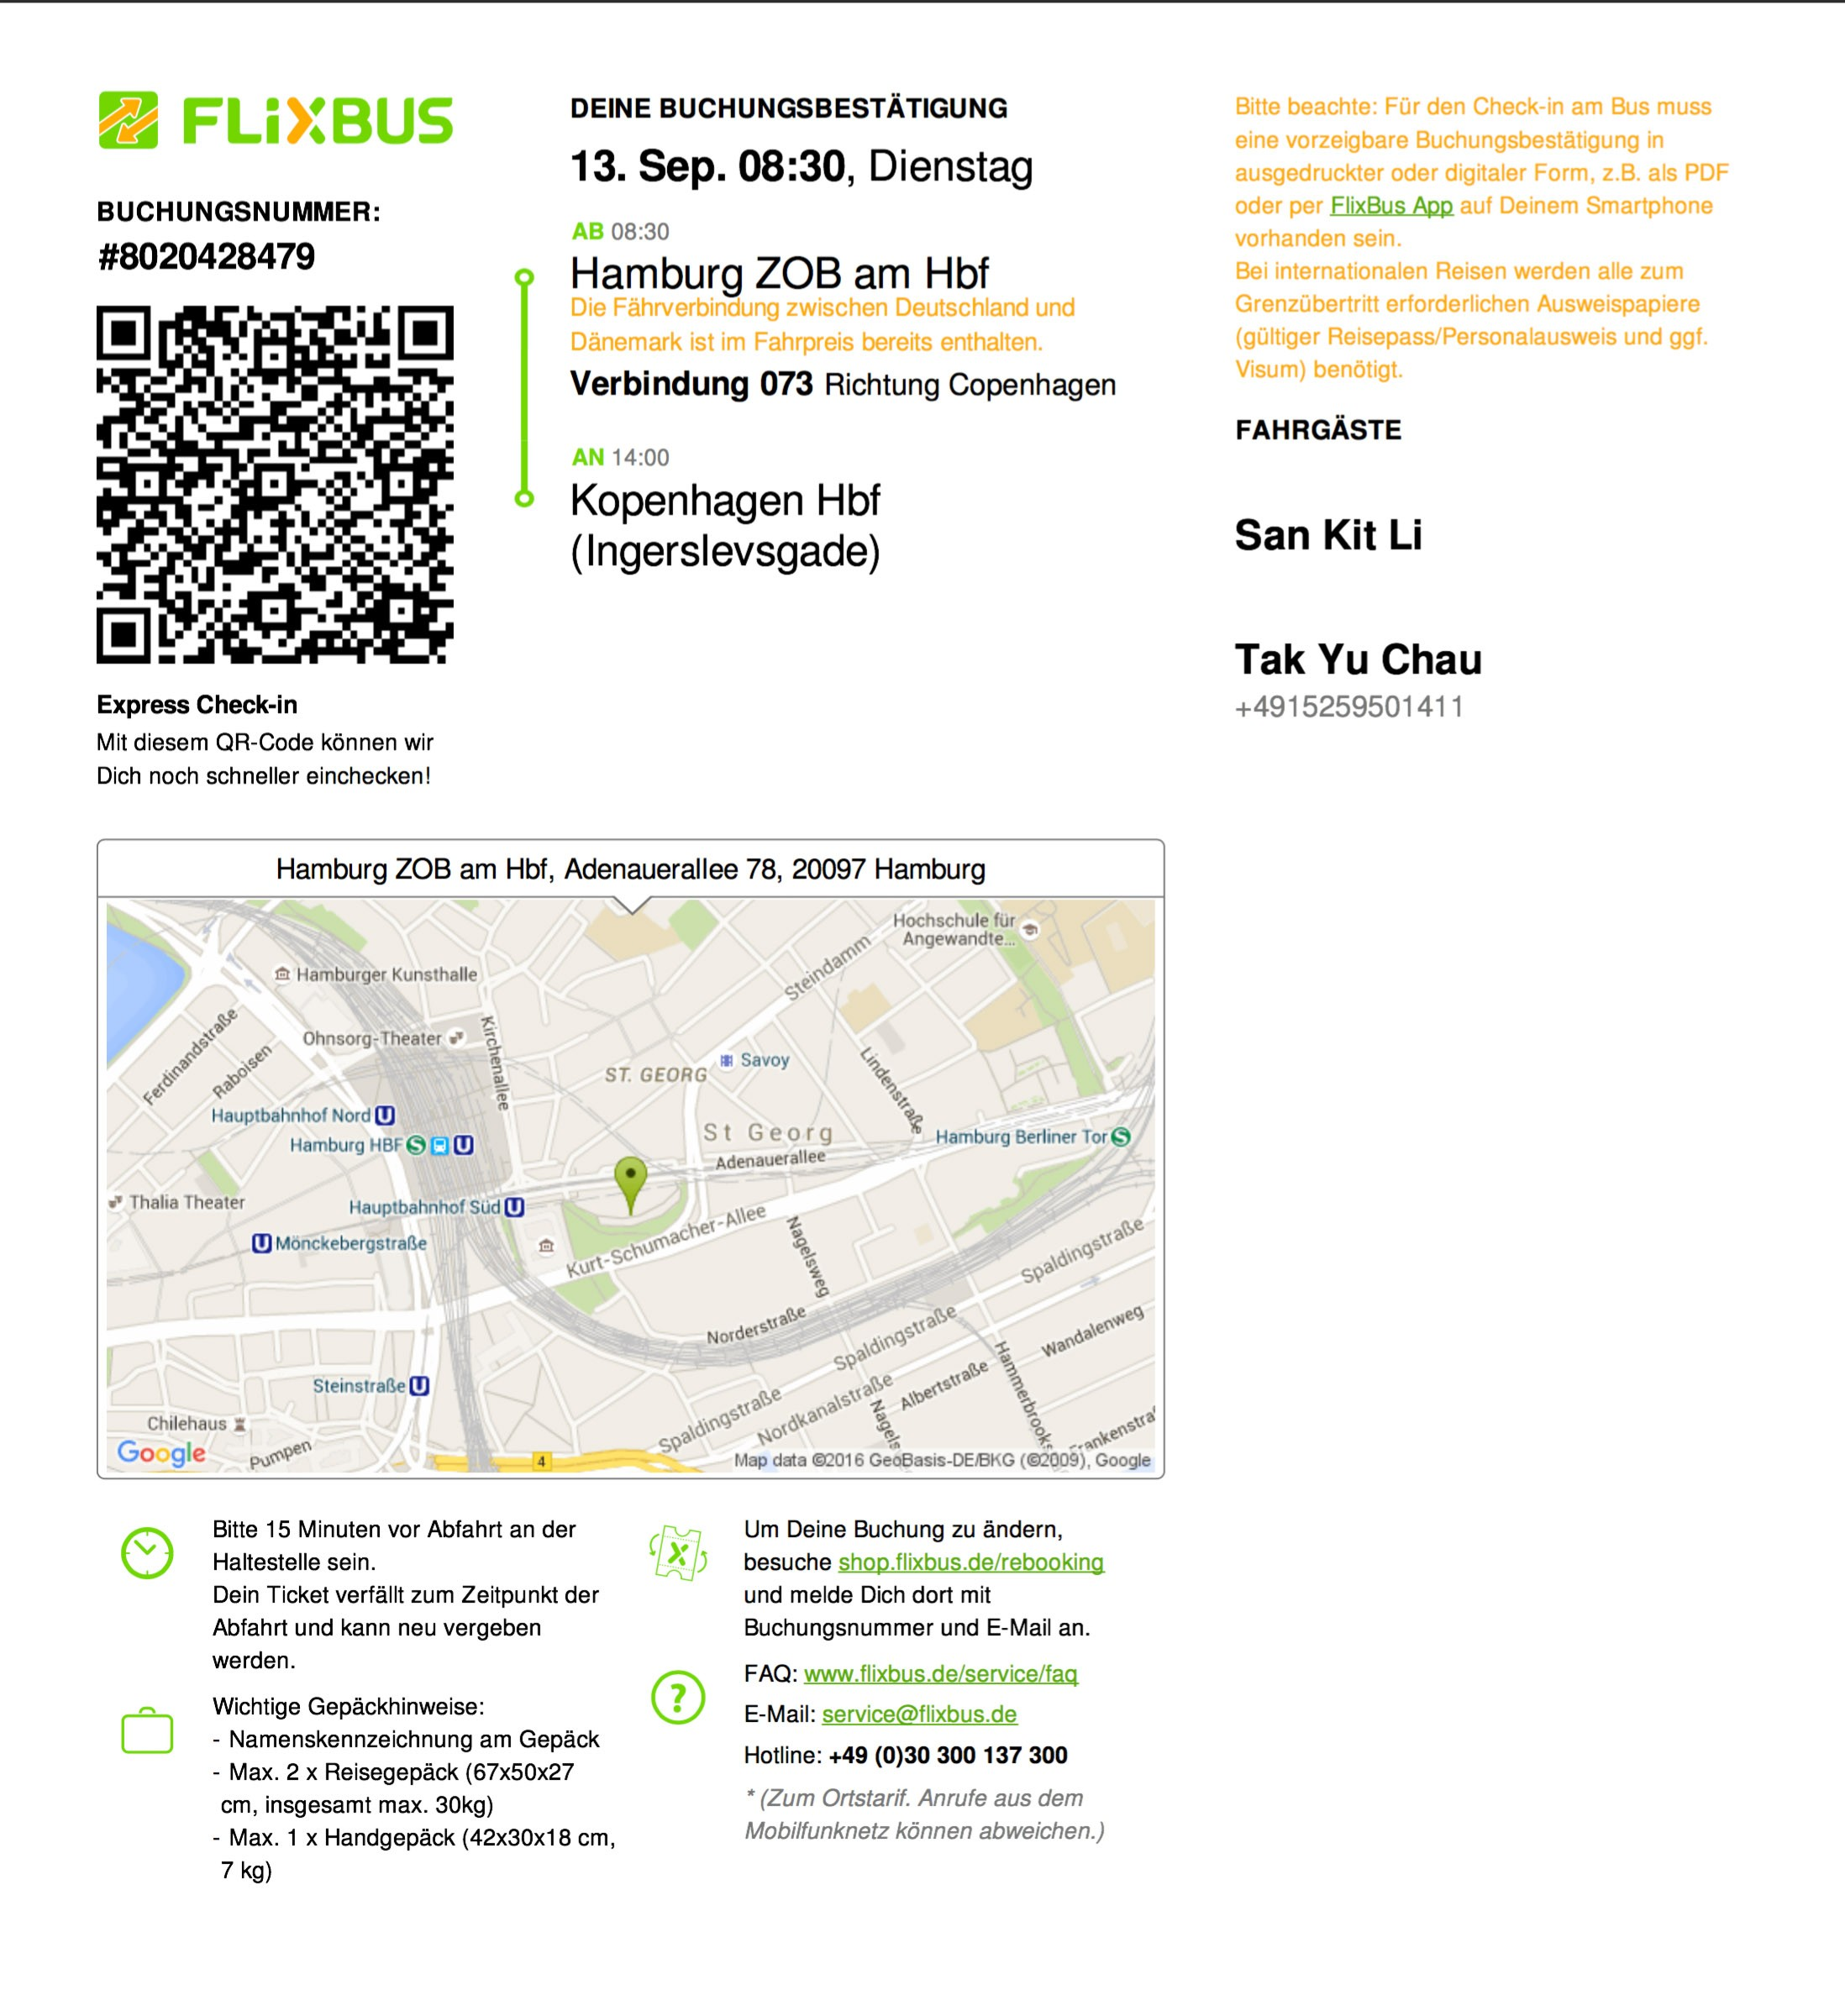 Flixbus e-ticket